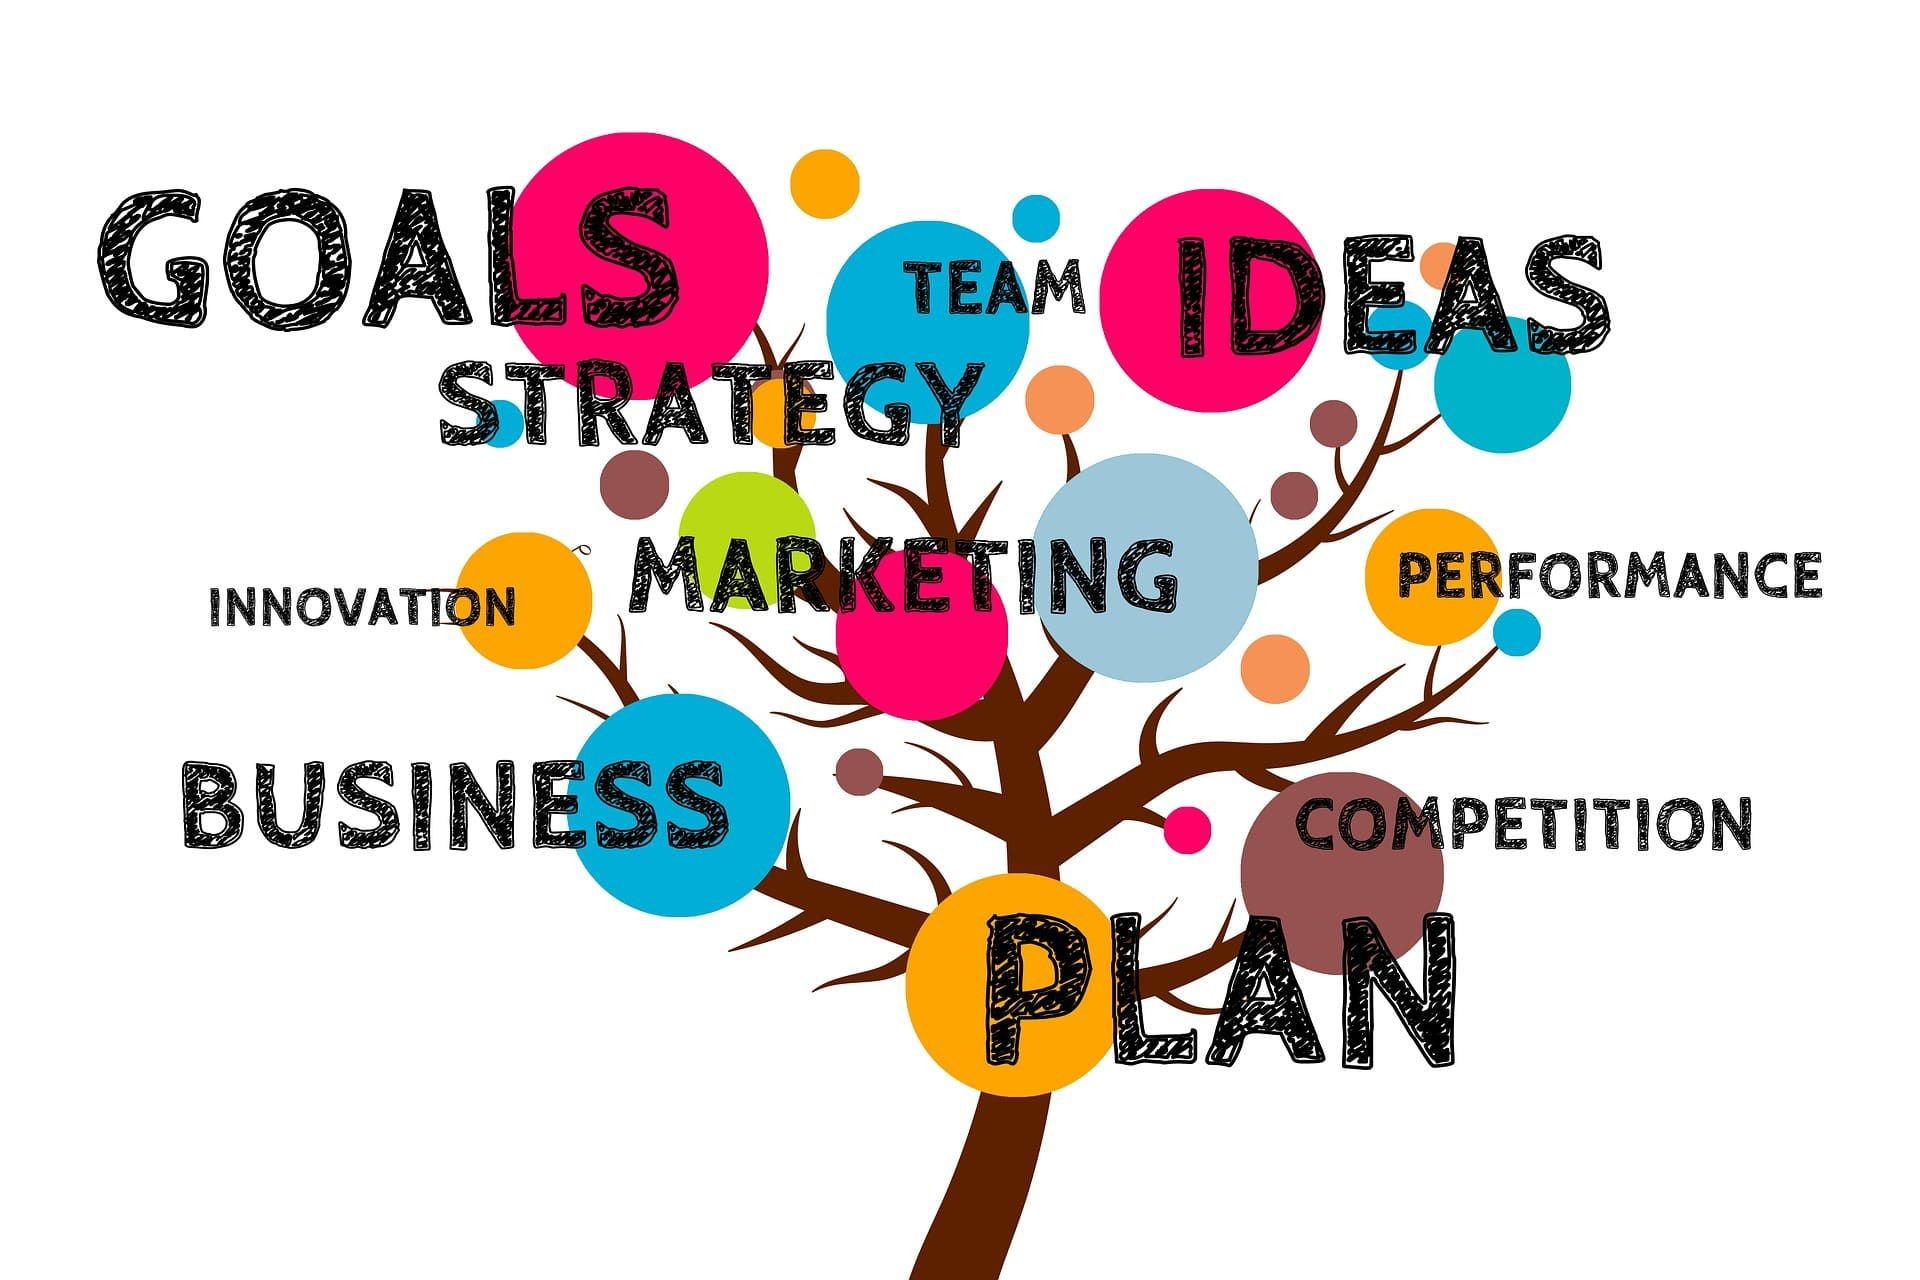 005 Sensational Product Launch Marketing Plan Template Free Example 1920